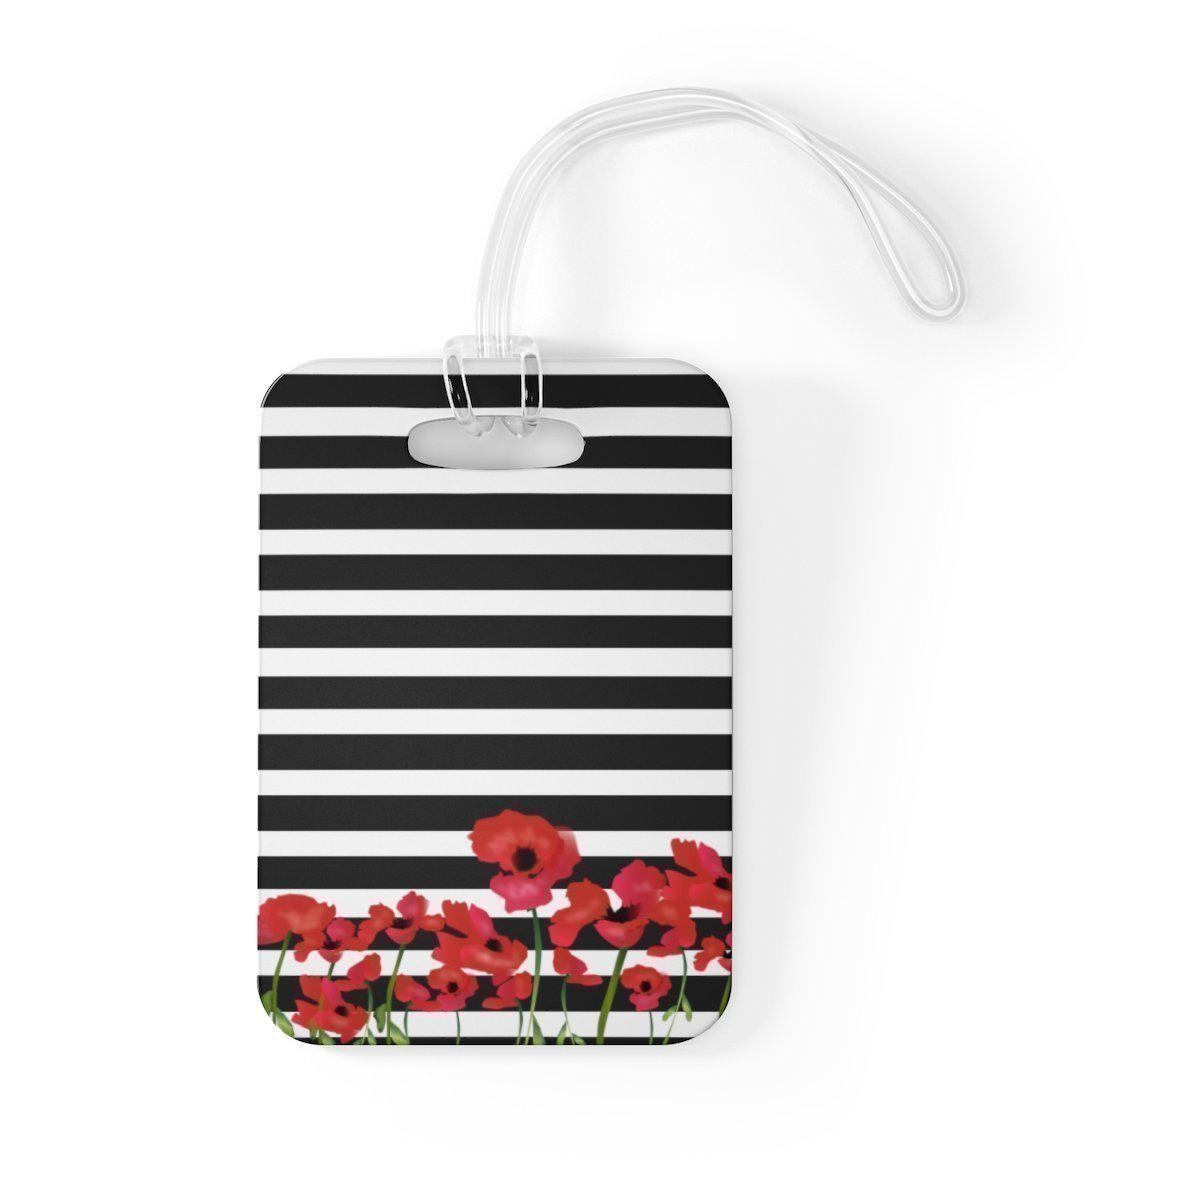 Maison d'Elite Pansies Luggage Tag-Luggage & Bags › Travel Accessories › Luggage Tags-Maison d'Elite-One Size-Très Elite